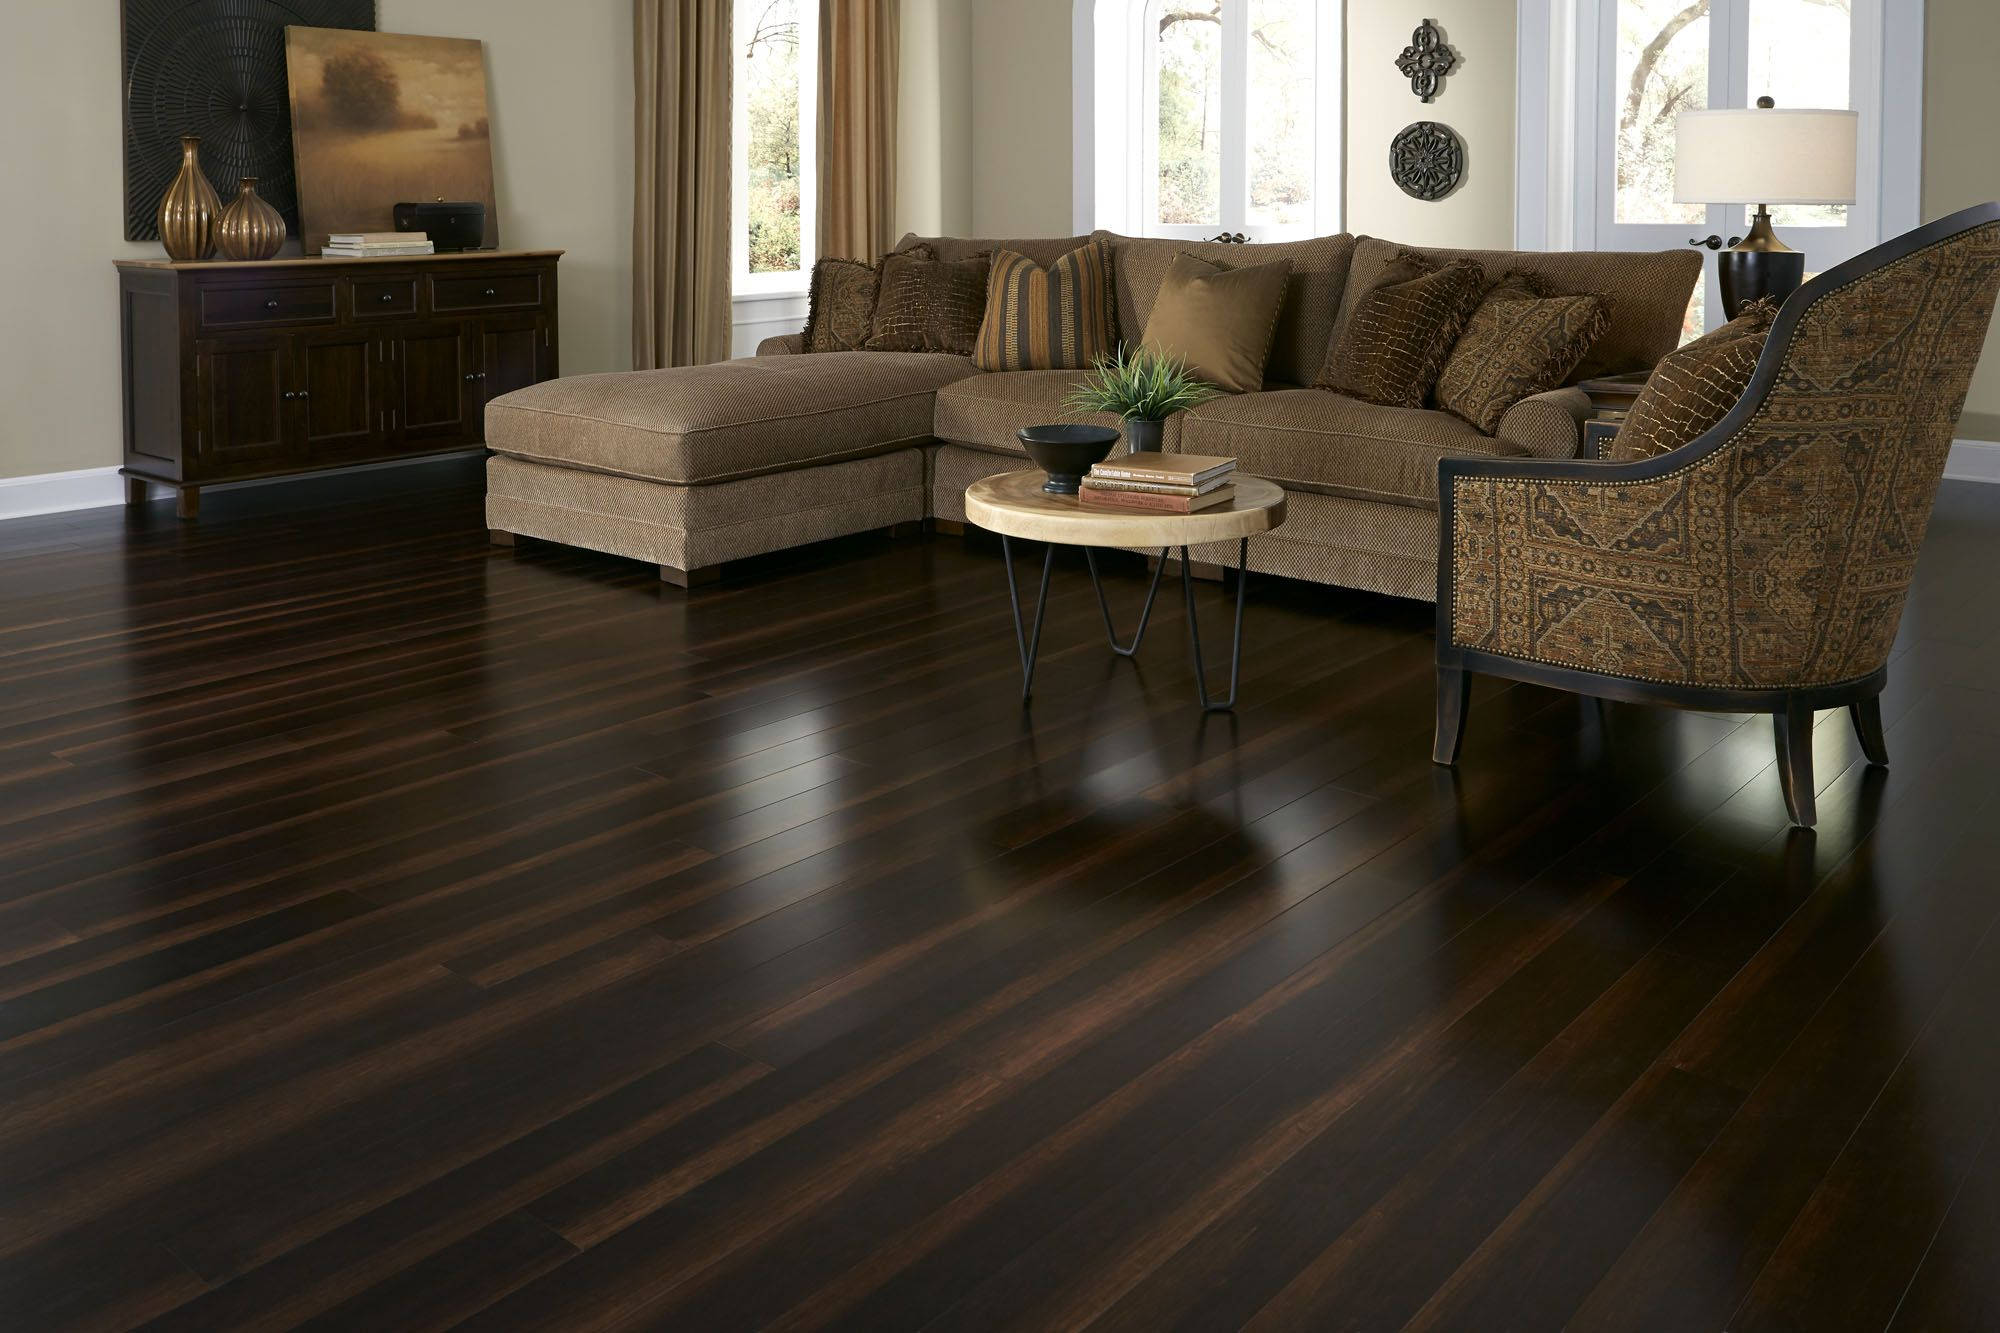 Bamboo Floors Like Red Siegel Are 2x As Hard As Oak Making Them An Excellent Choice For Just About Dark Laminate Floors Bamboo Flooring Wood Laminate Flooring